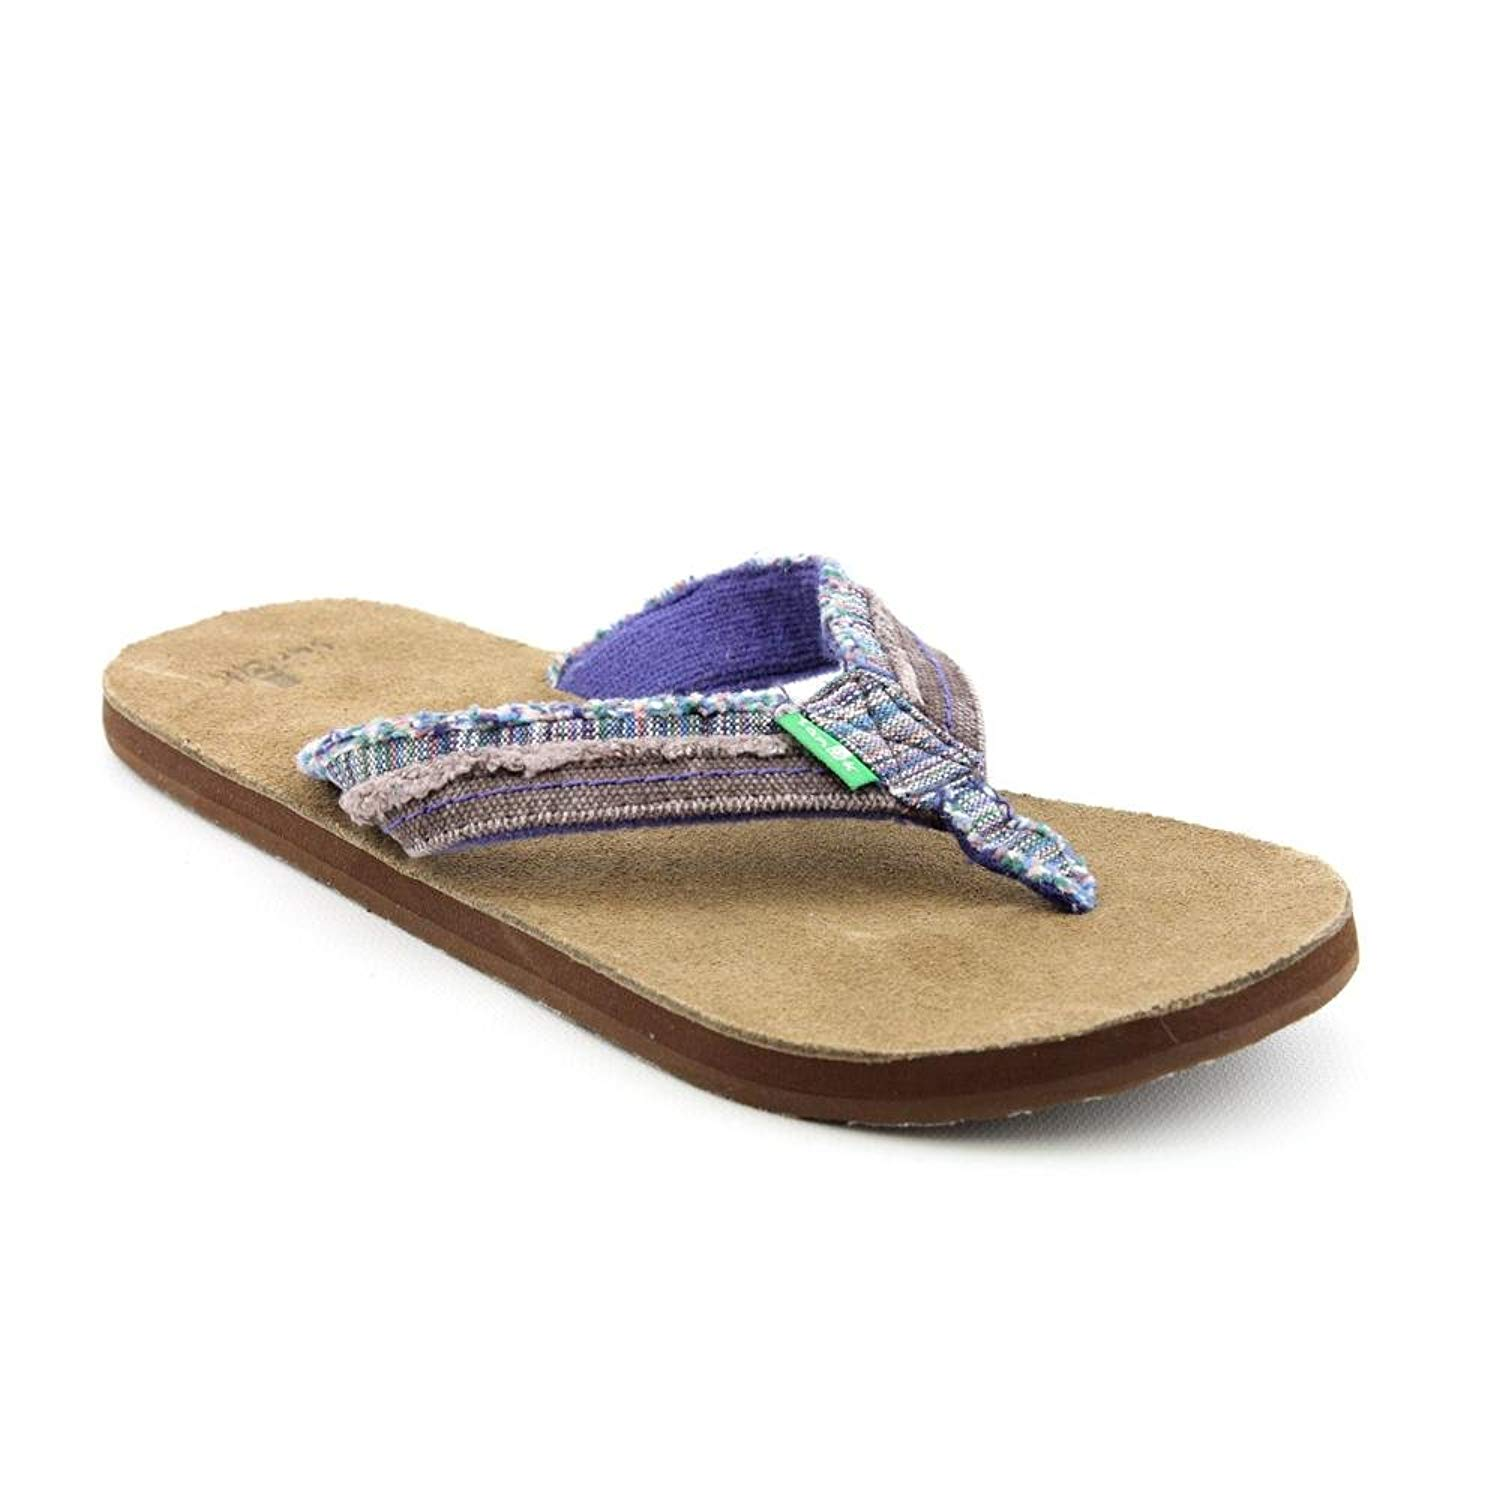 d18df53d9b6 Get Quotations · Sanuk - Sanuk Womens Flip Flops - Fraid Too - Blue -  Women s 5